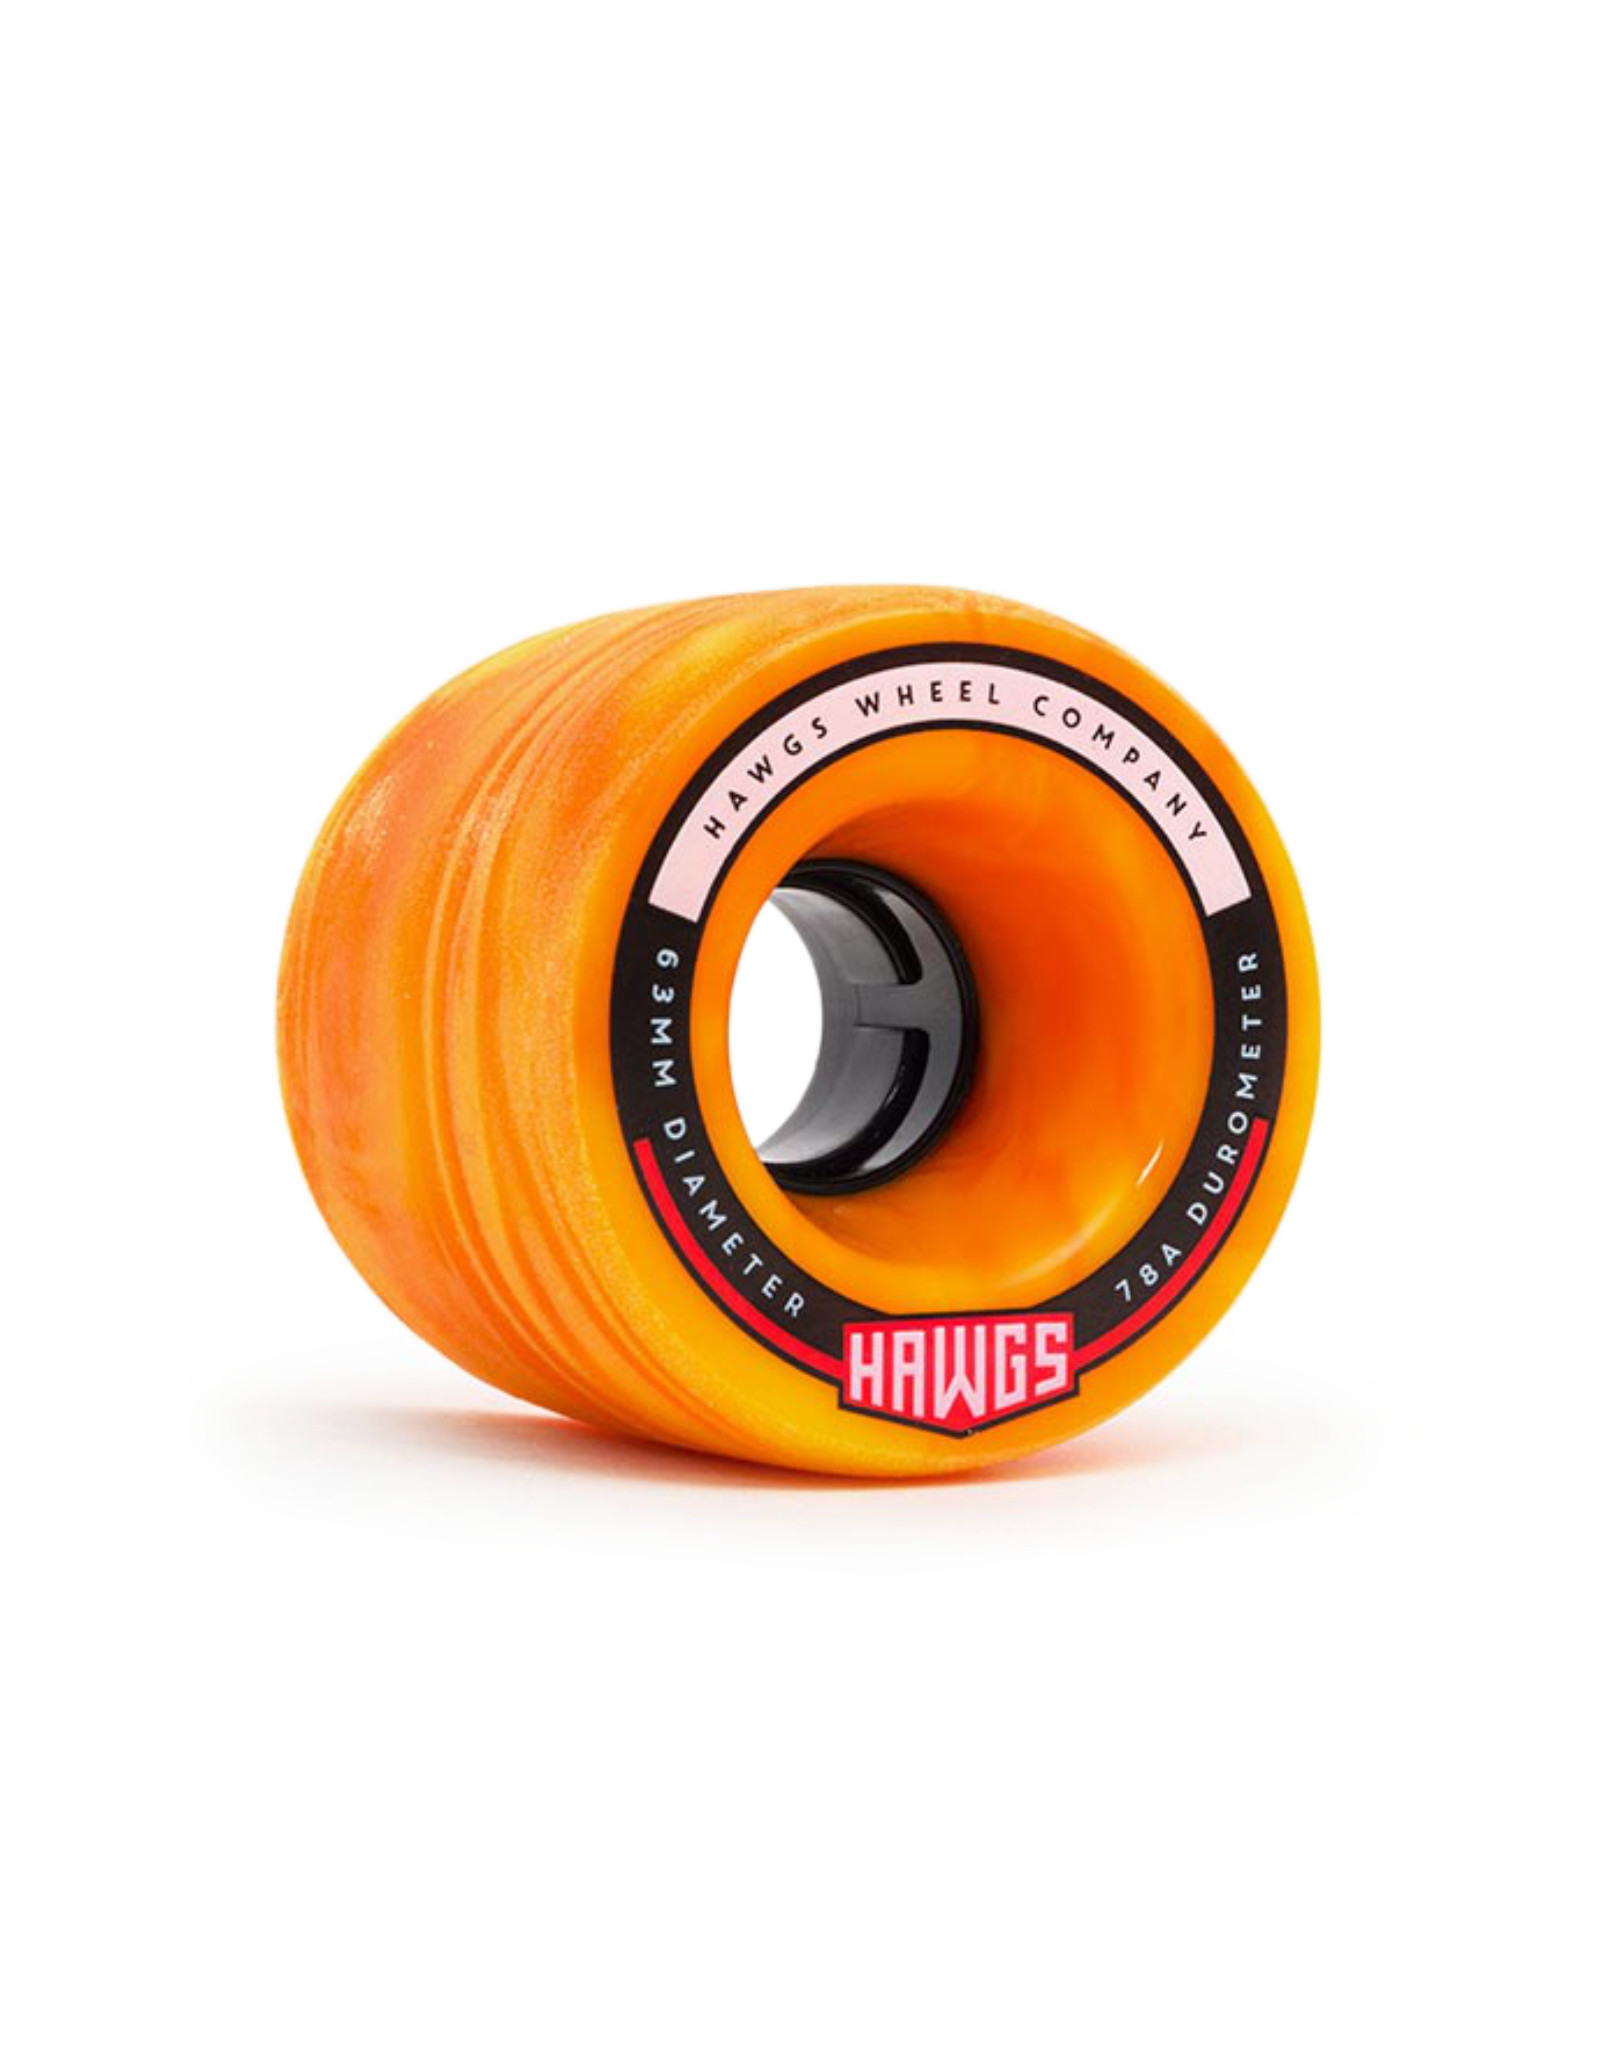 Hawgs Wheels Hawgs Fatty Rollen 63 mm 78A Orange/Yellow Swirl 4er-Set